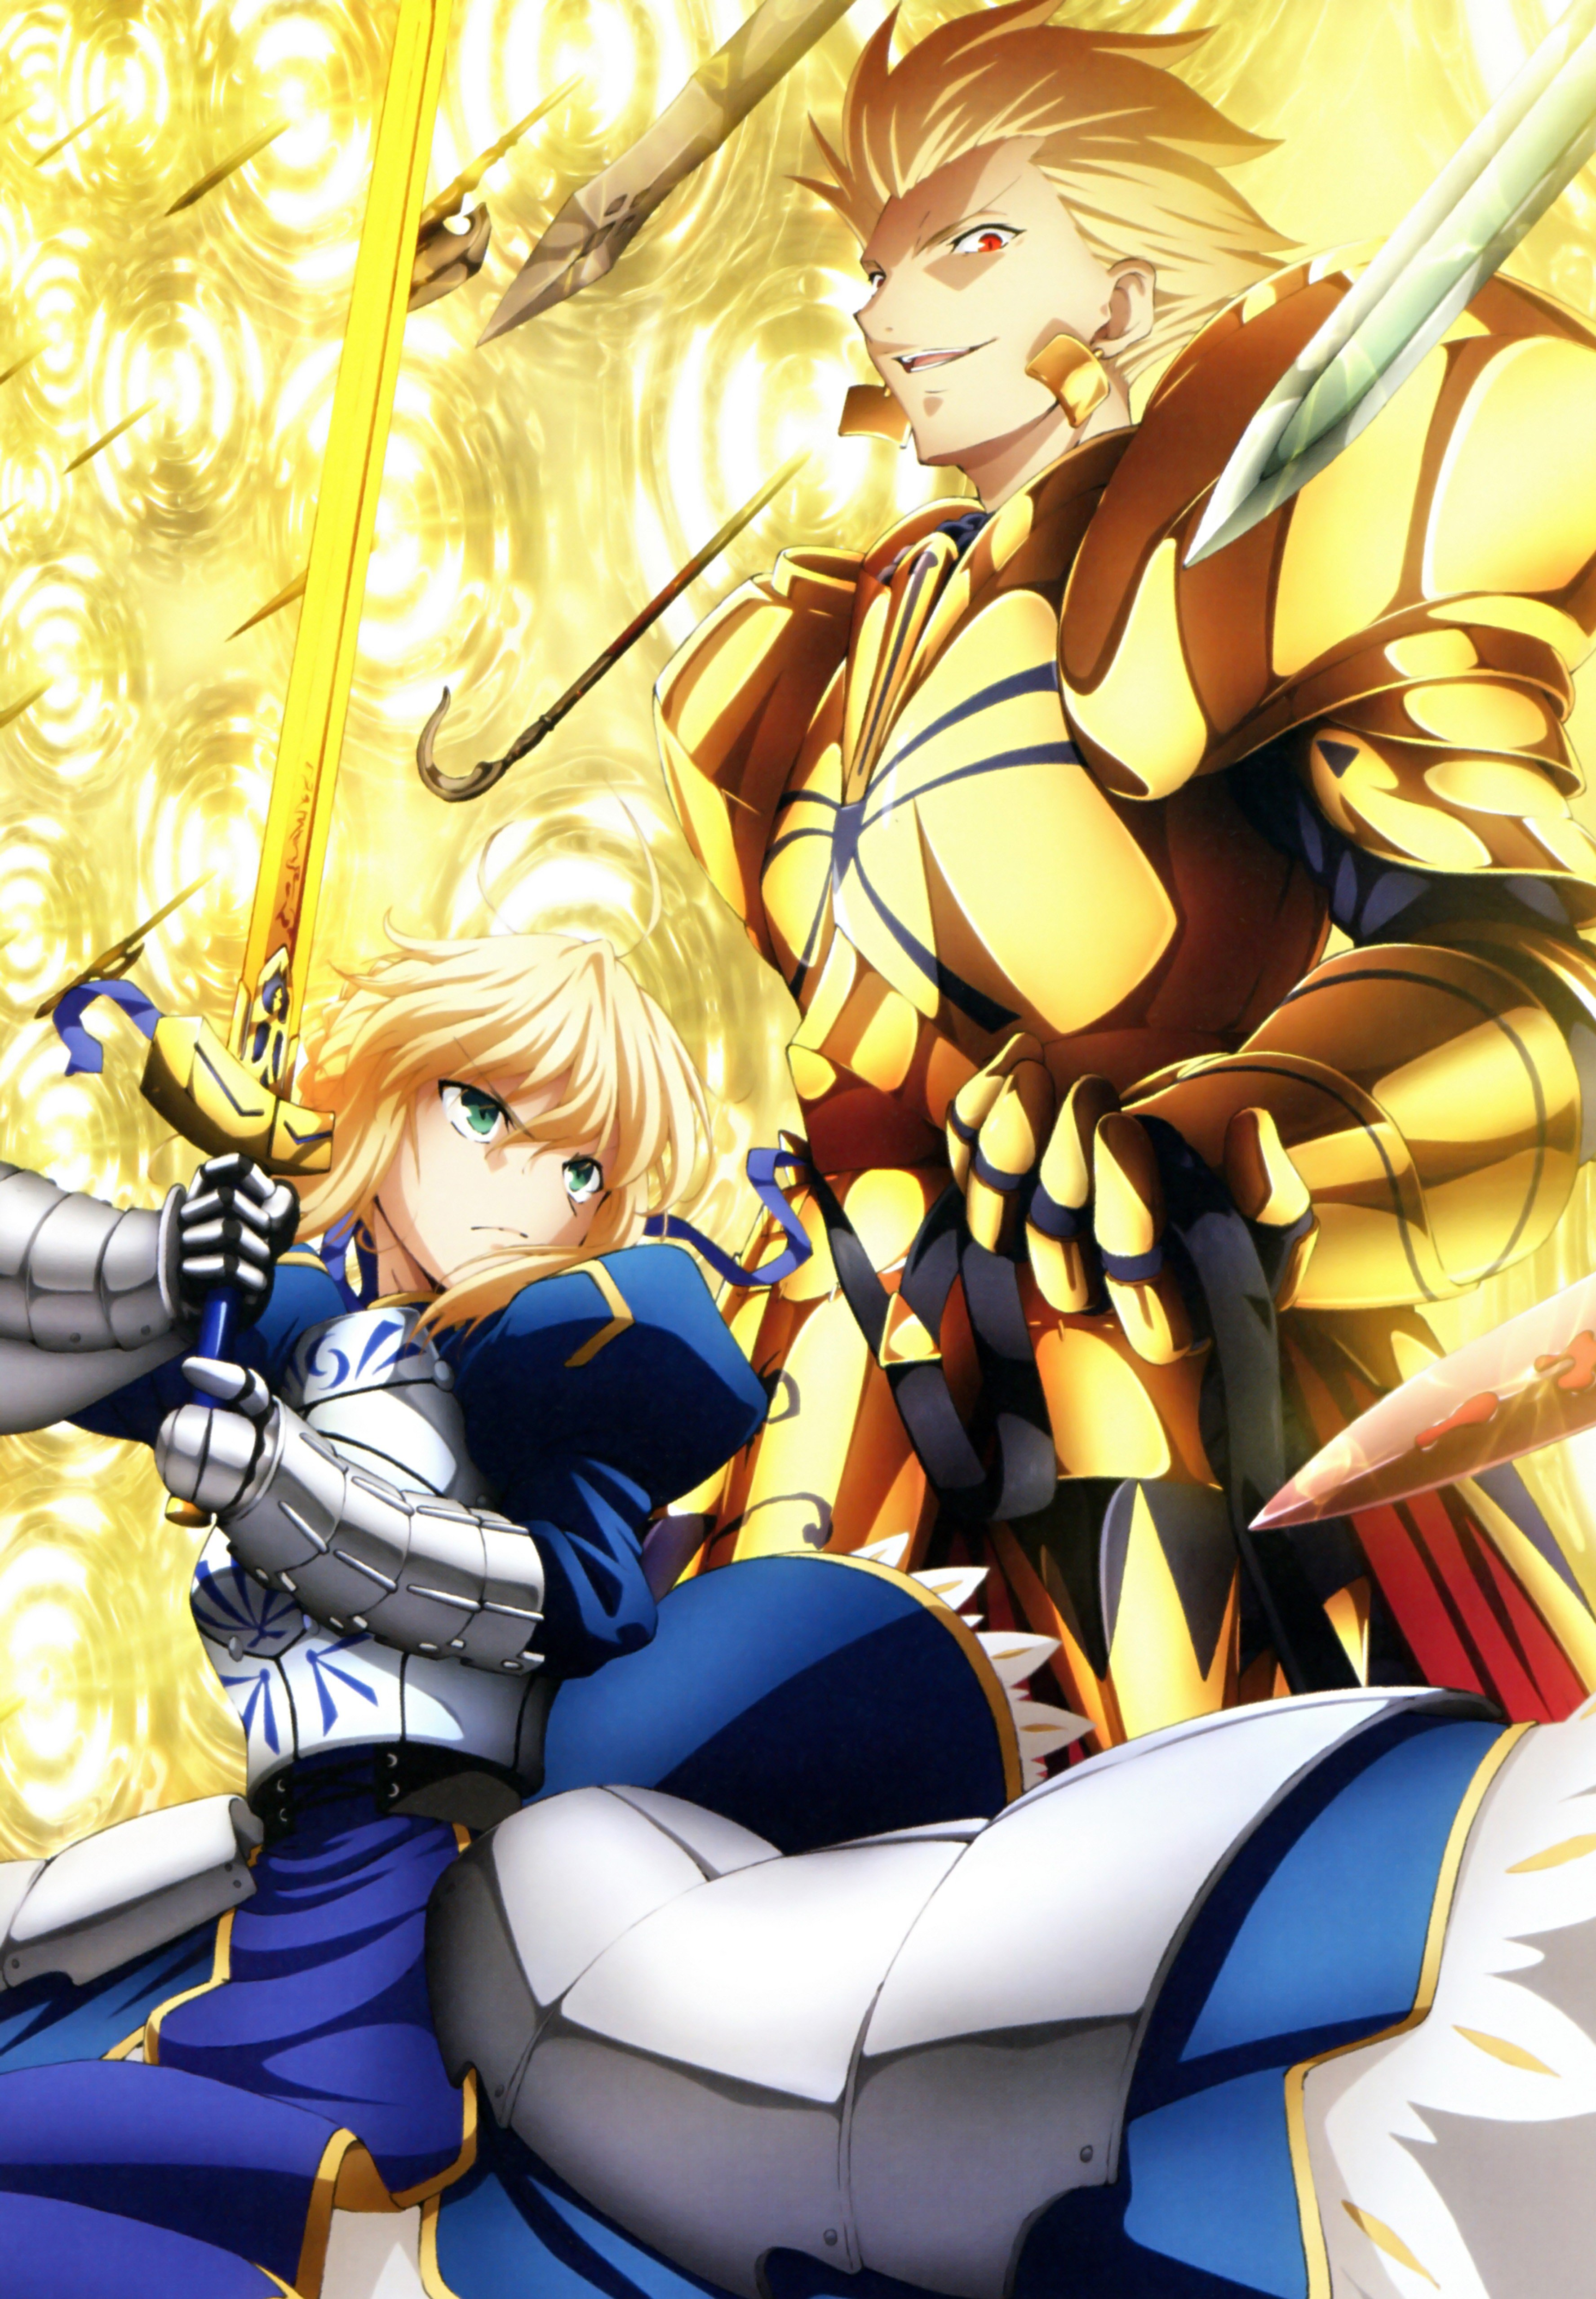 Gilgamesh Anime Saber Fatezero Fate Series Wallpaper